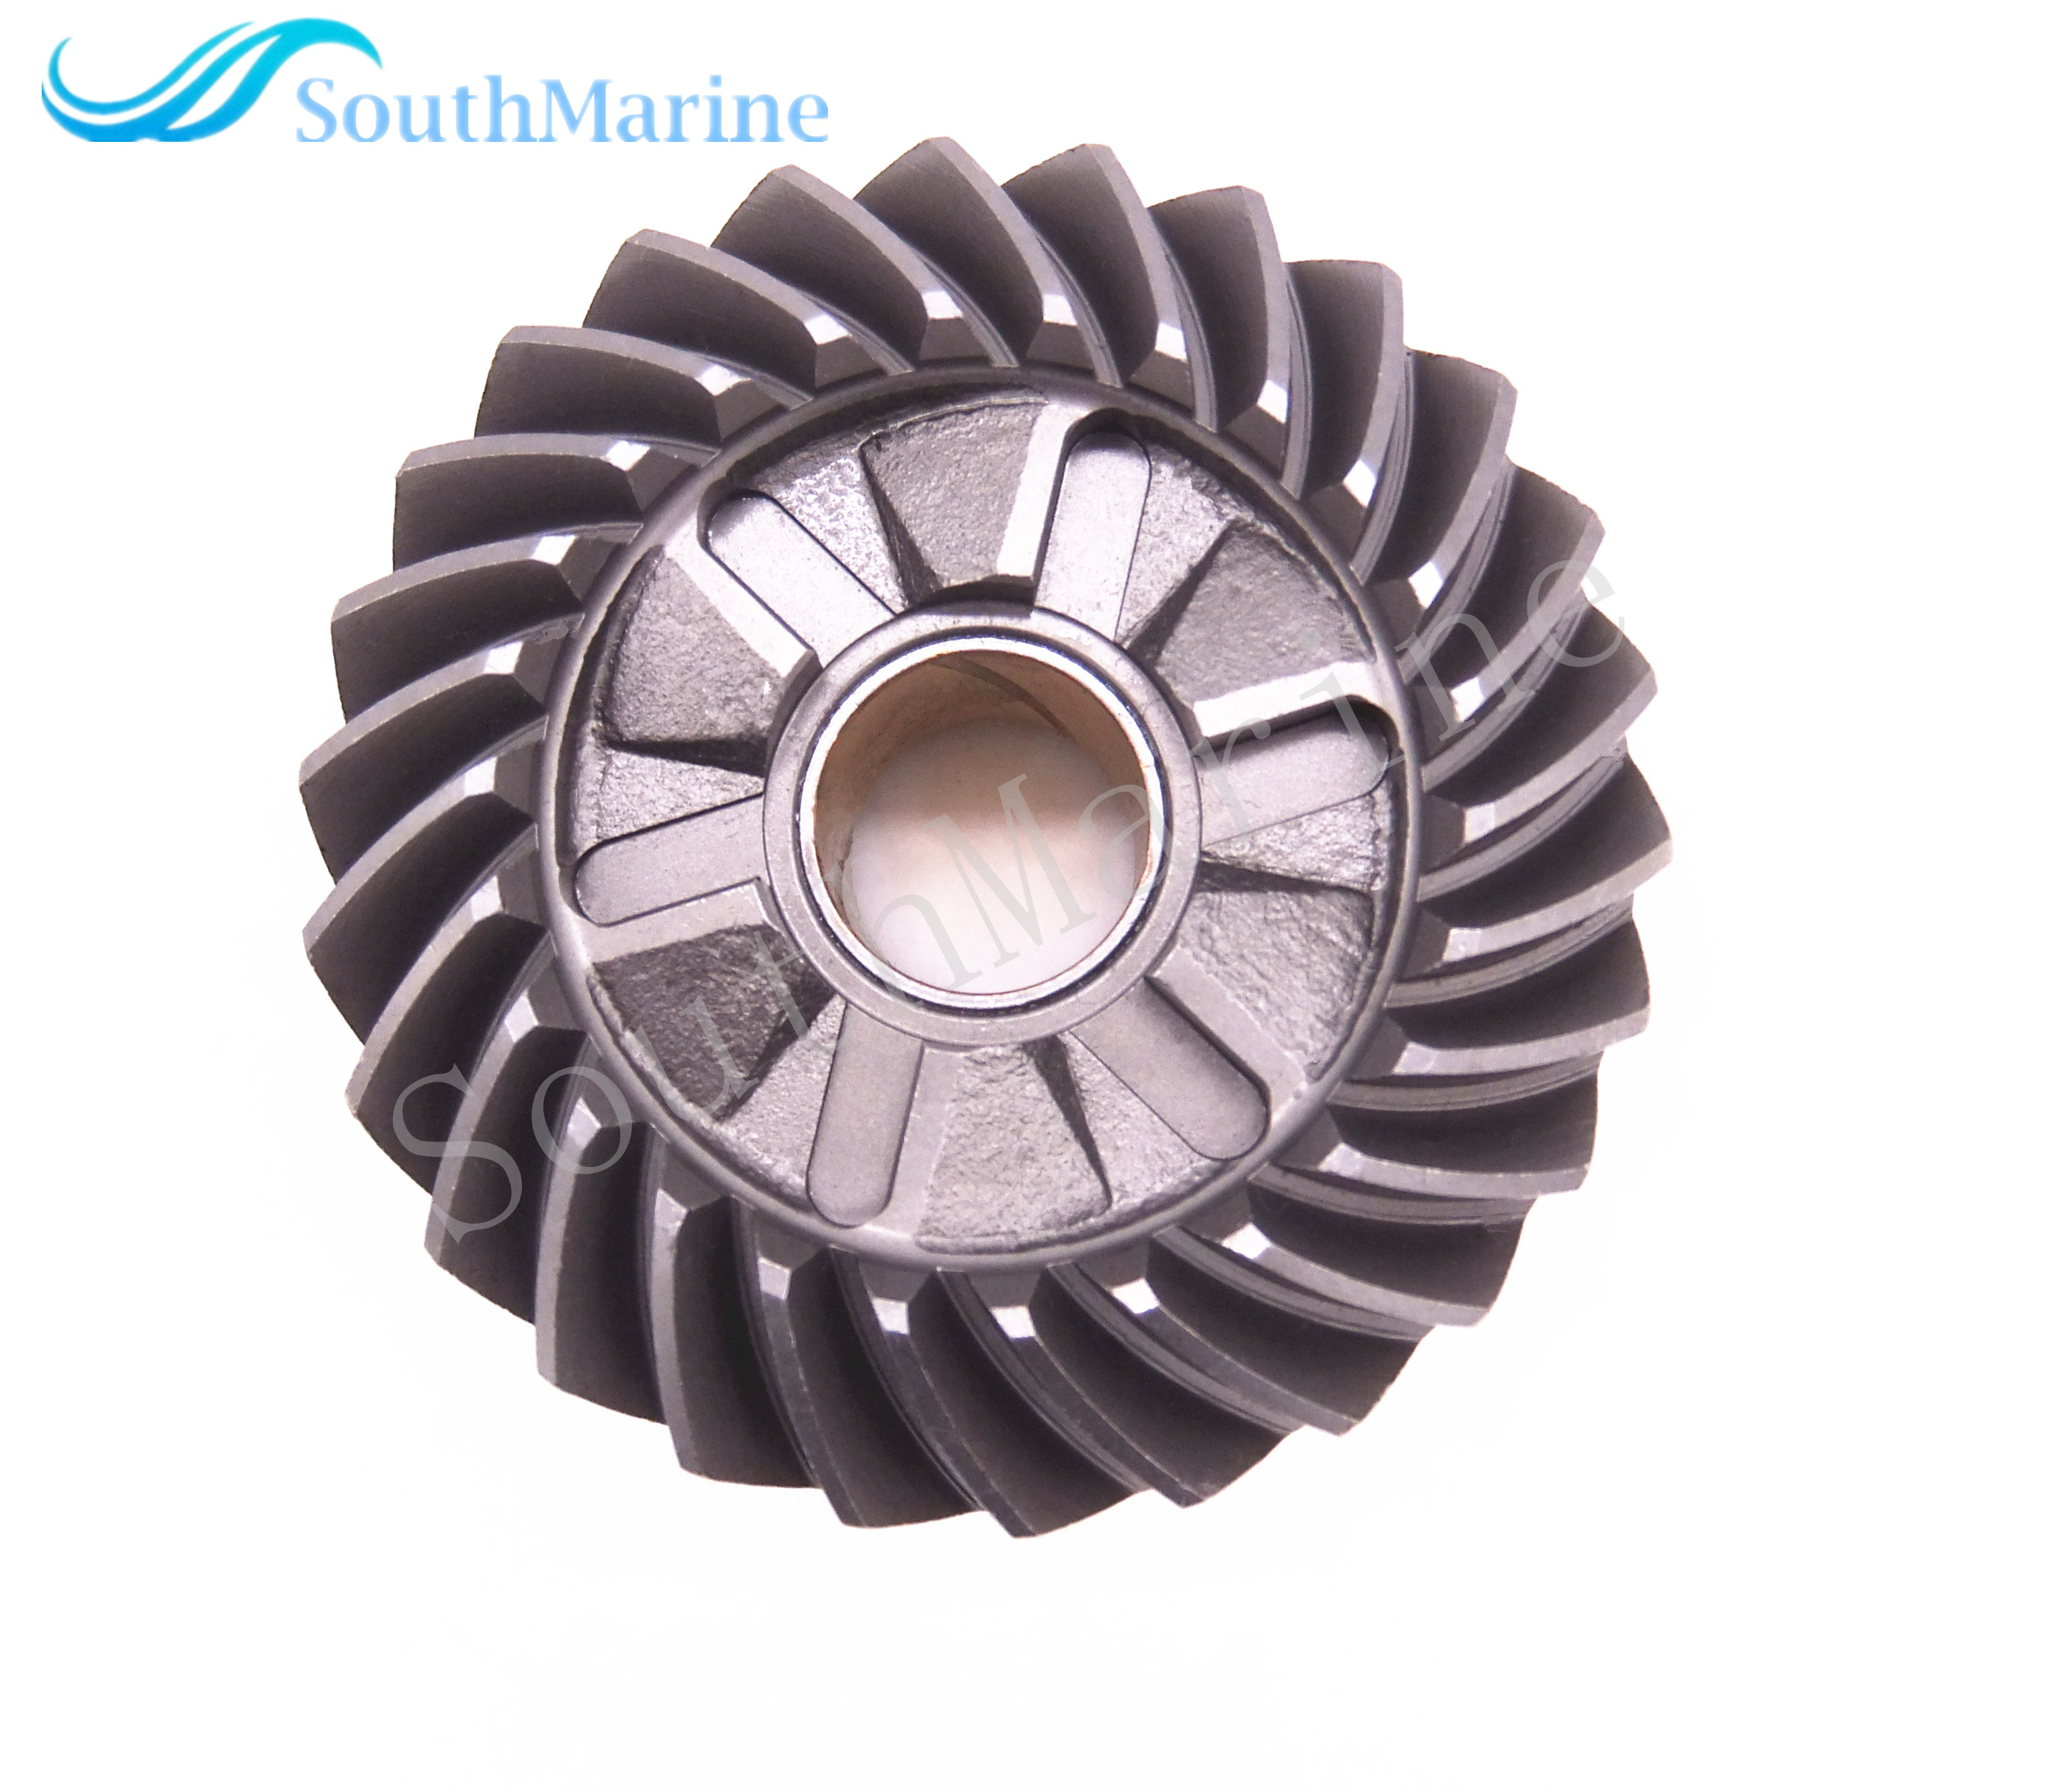 Atv,rv,boat & Other Vehicle Obedient T85-04000100 Forward Gear For Parsun Hdx Outboard Engine 2-stroke T75 T85 T90 Boat Motor